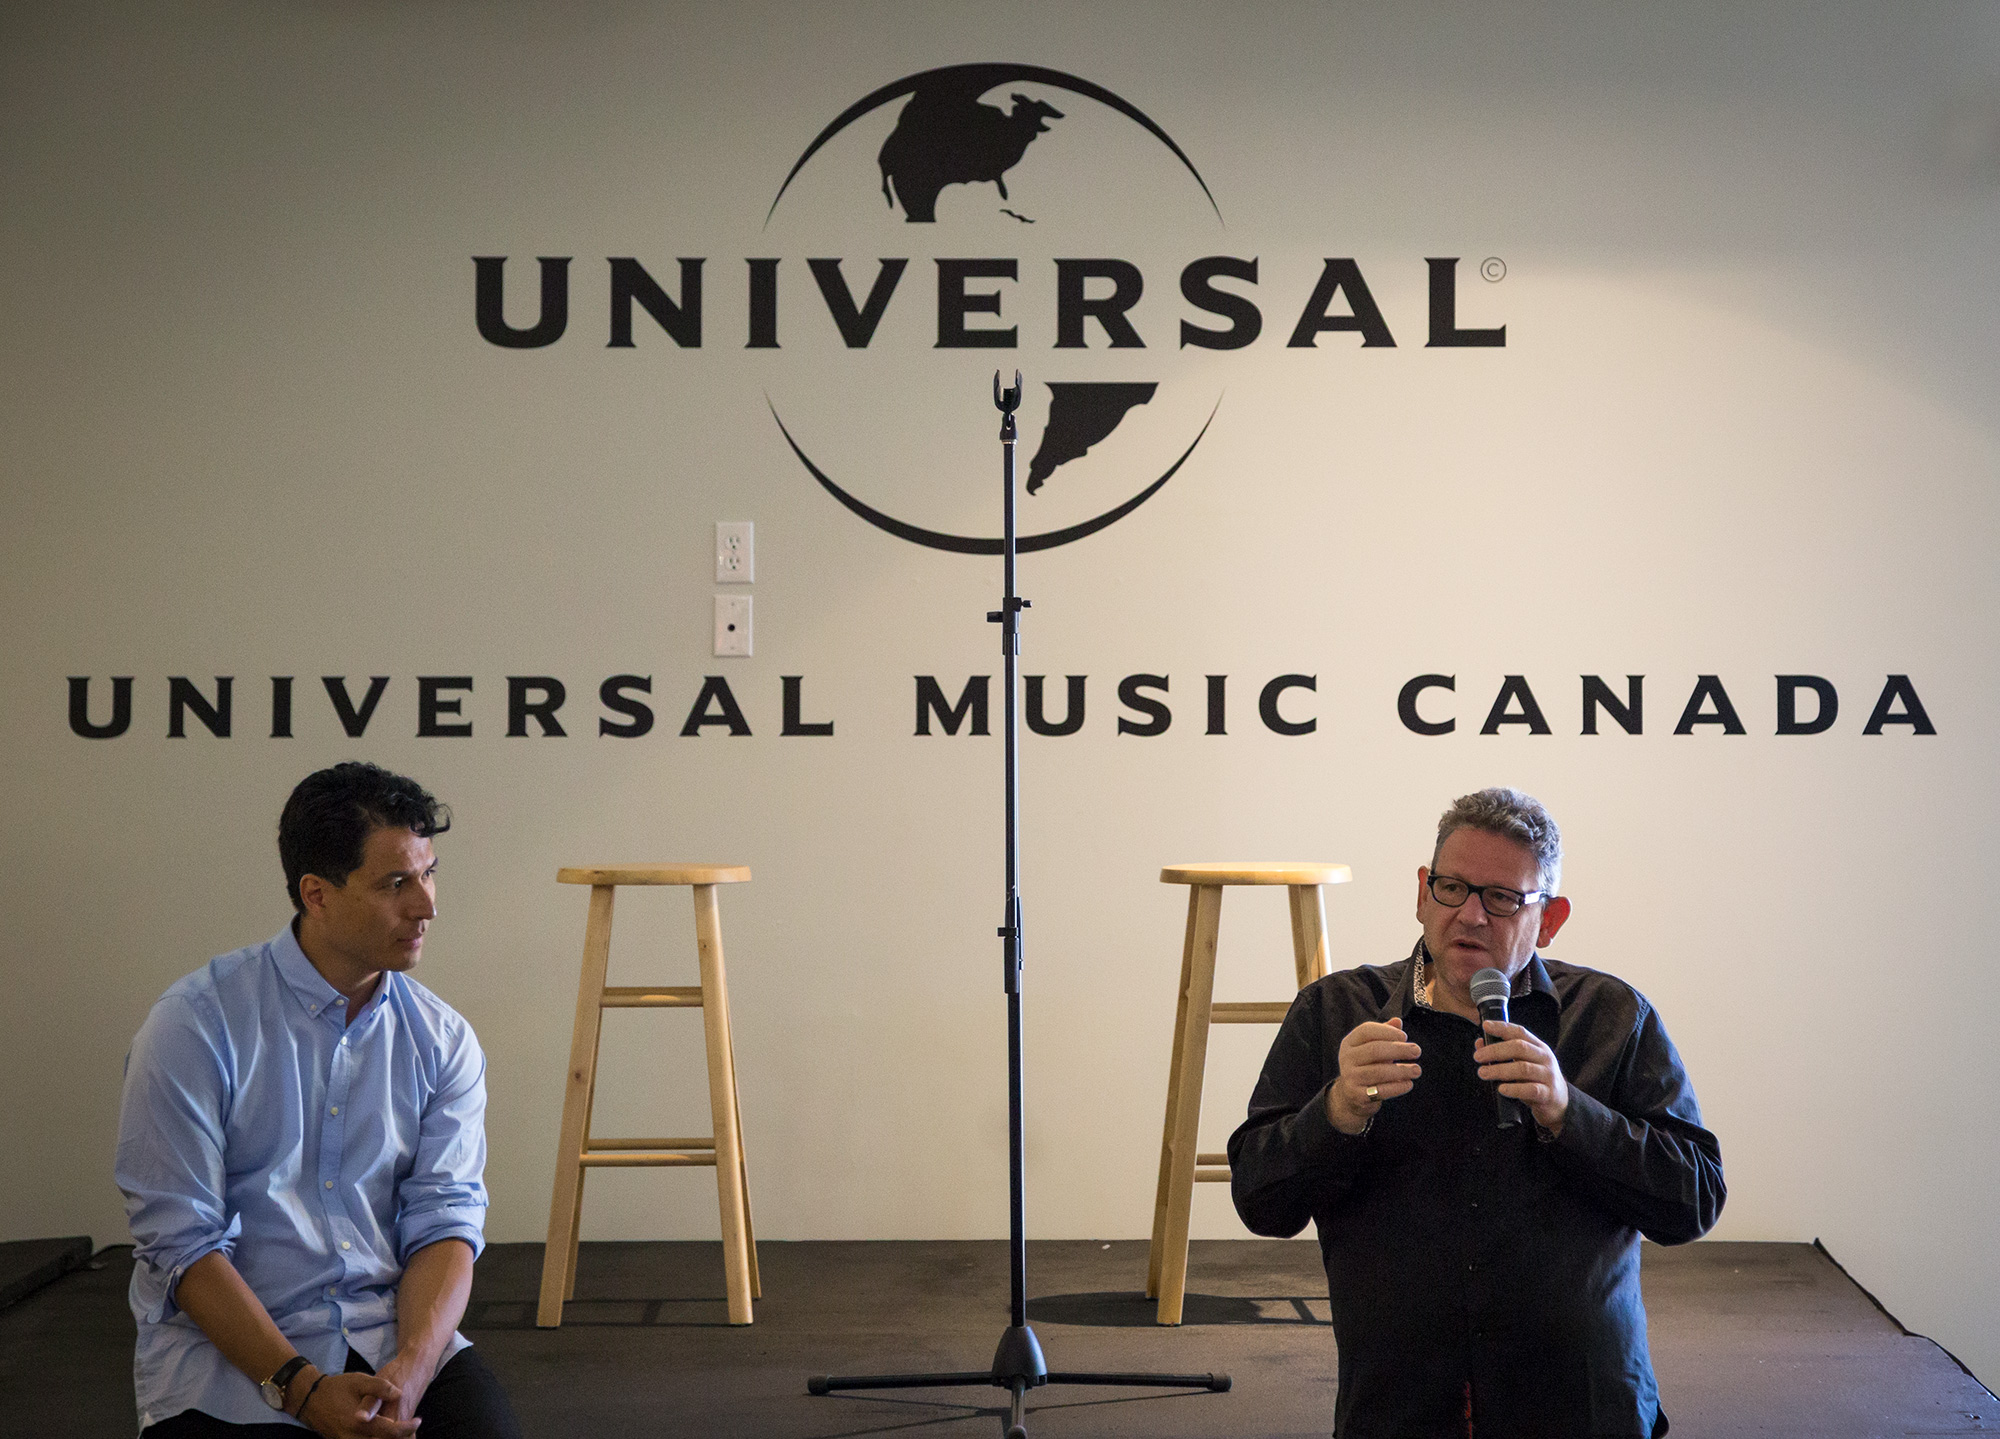 Sir Lucian Grainge, Chairman and CEO of UMG, visited the Universal Music Canada offices this week, addressing staff and highlighting the importance of the Canadian music market in terms of economic activity and wealth of talent.""